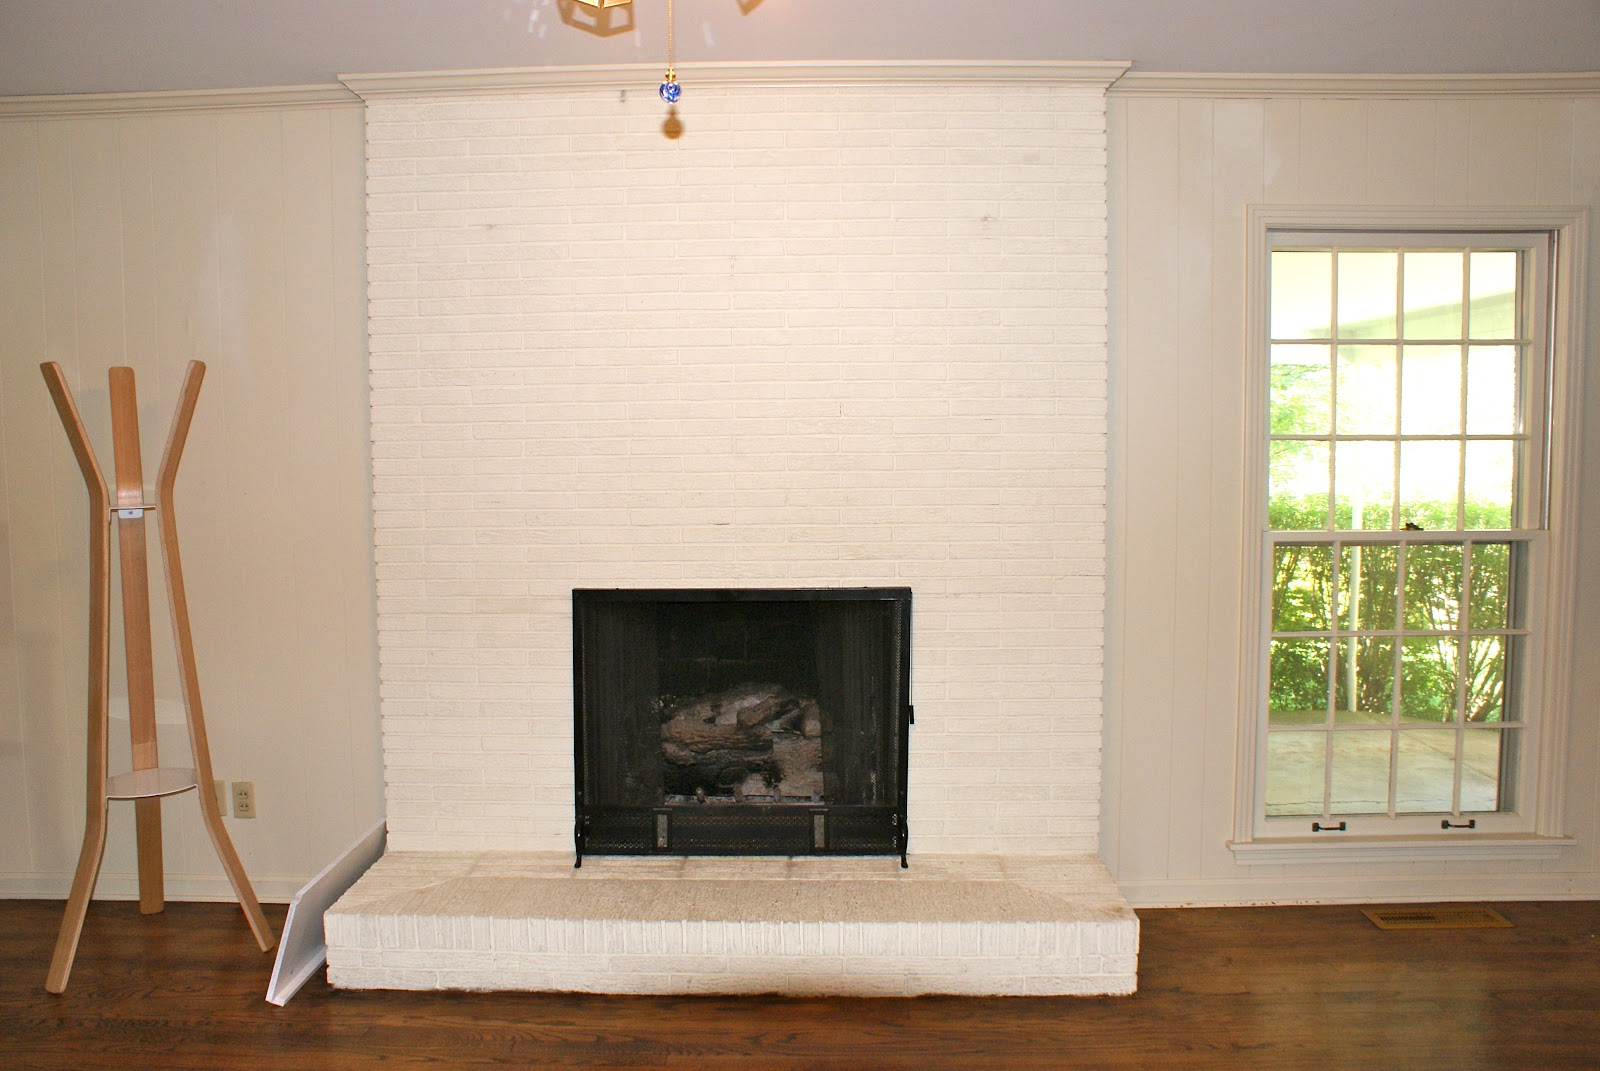 Heat Resistant Paint Fireplace Some Like A Project Painting The Fireplace